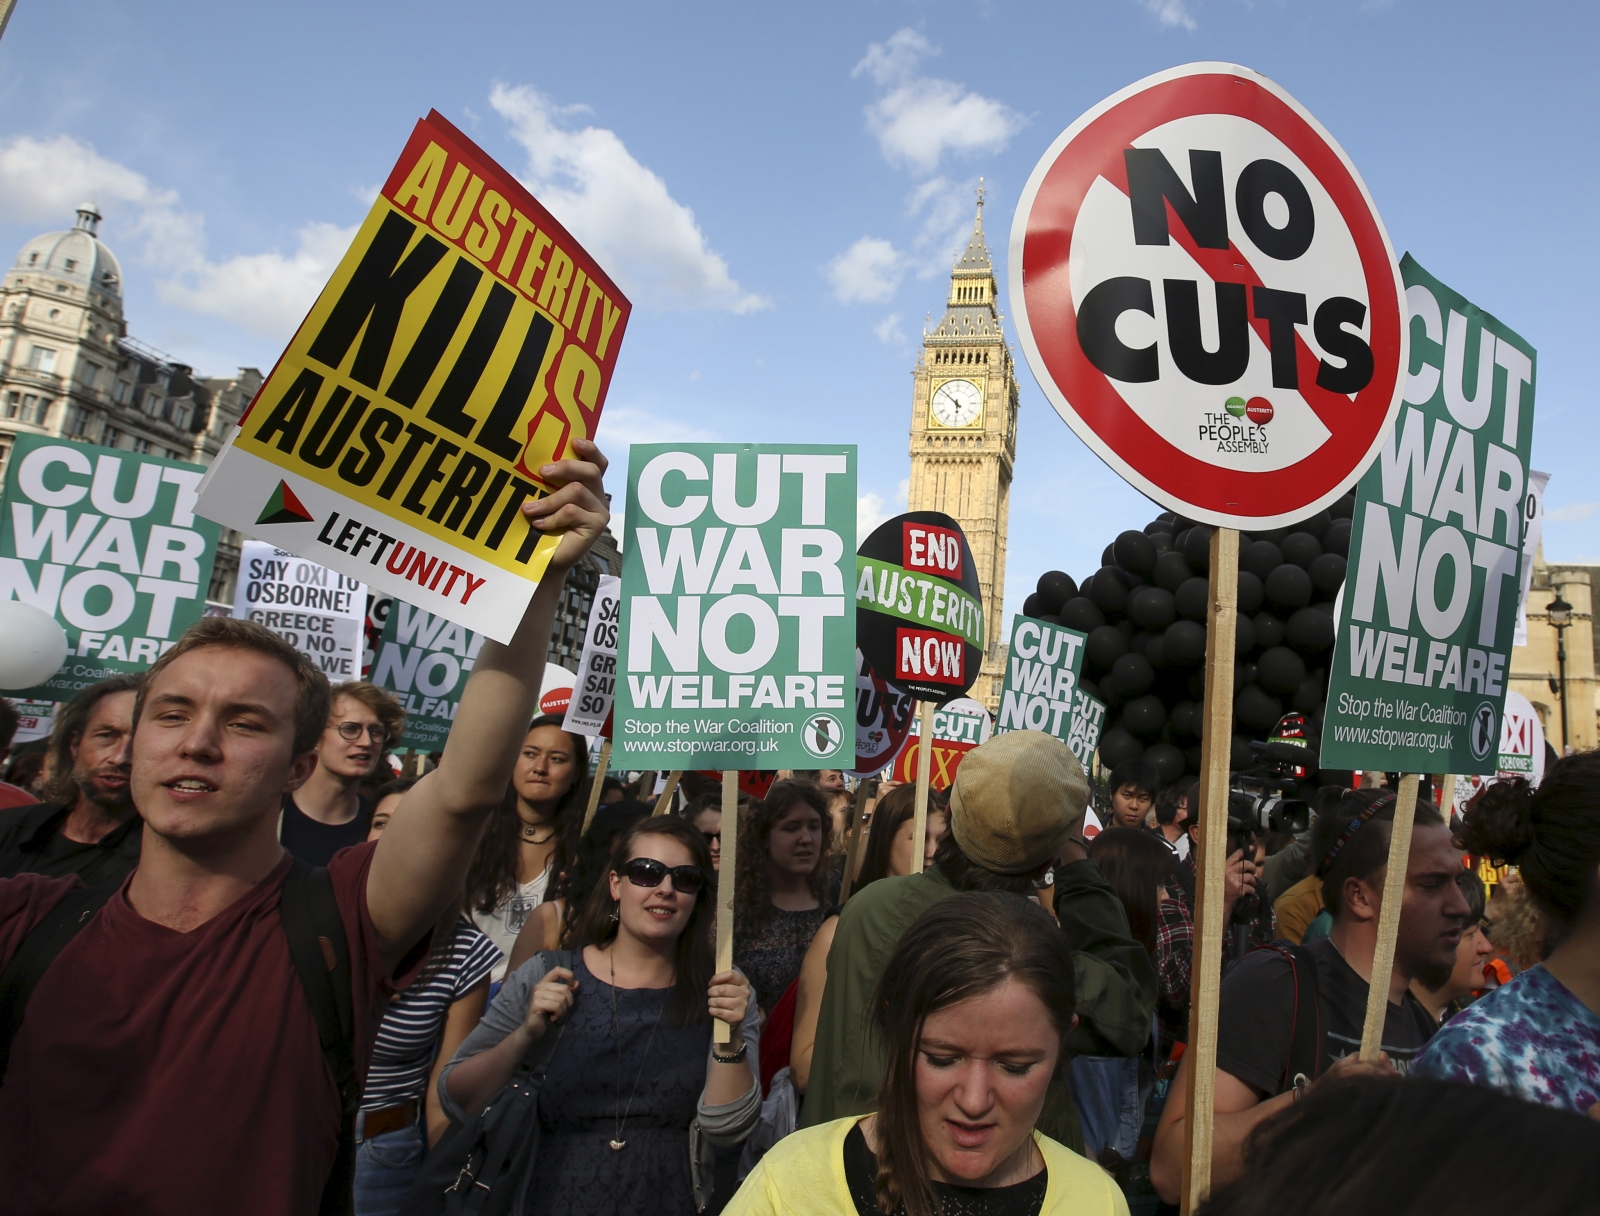 Protests against welfare cuts